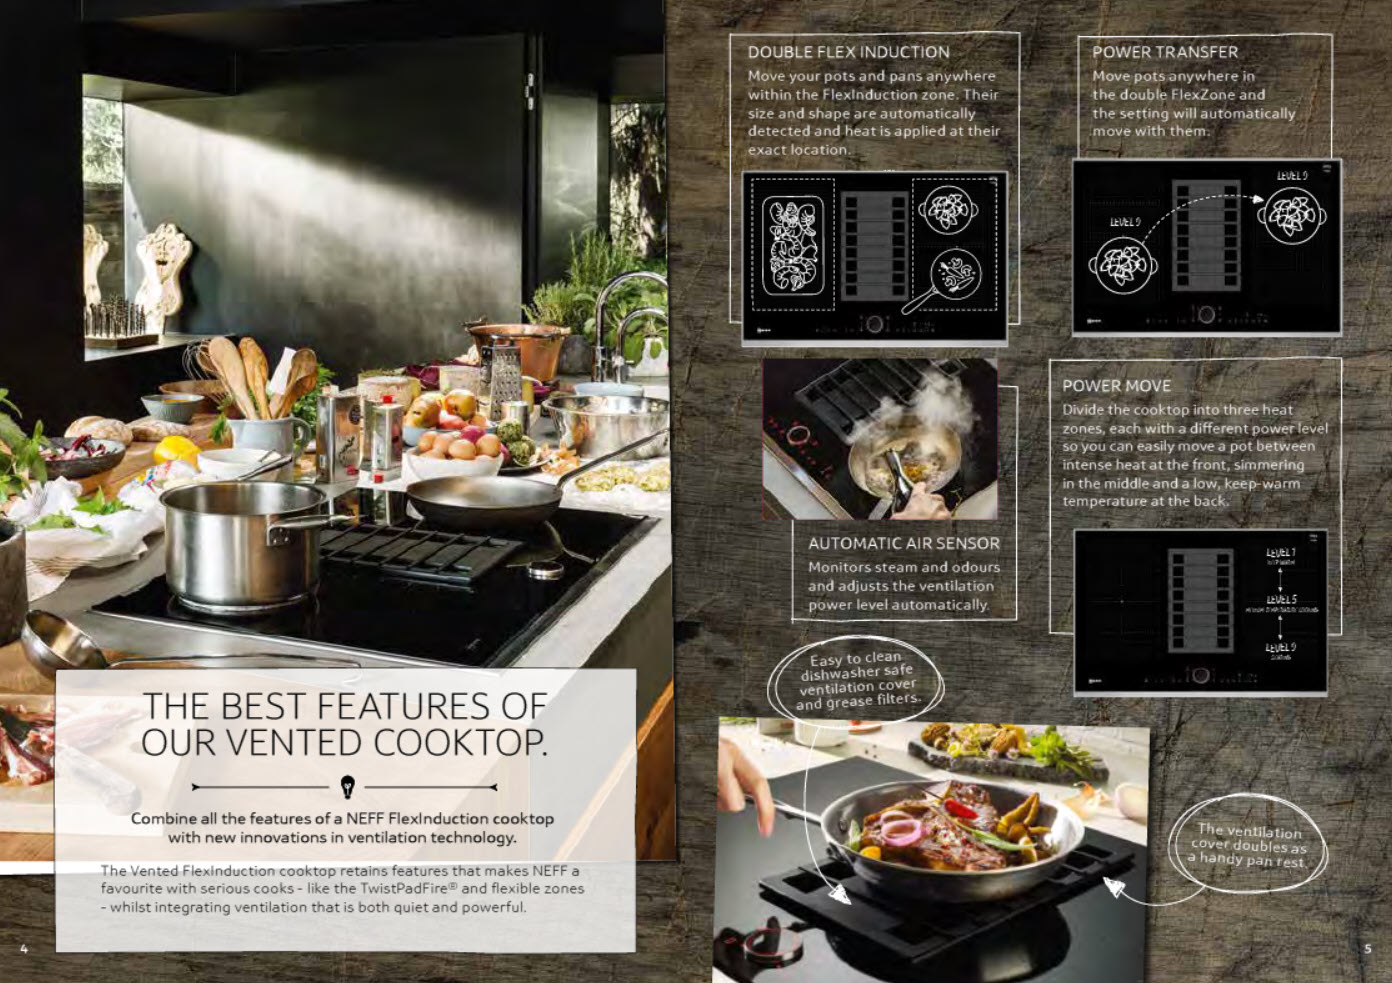 NEFF T58TS6BN0 80cm Vented FlexInduction Cooktop Overview Brochure 3